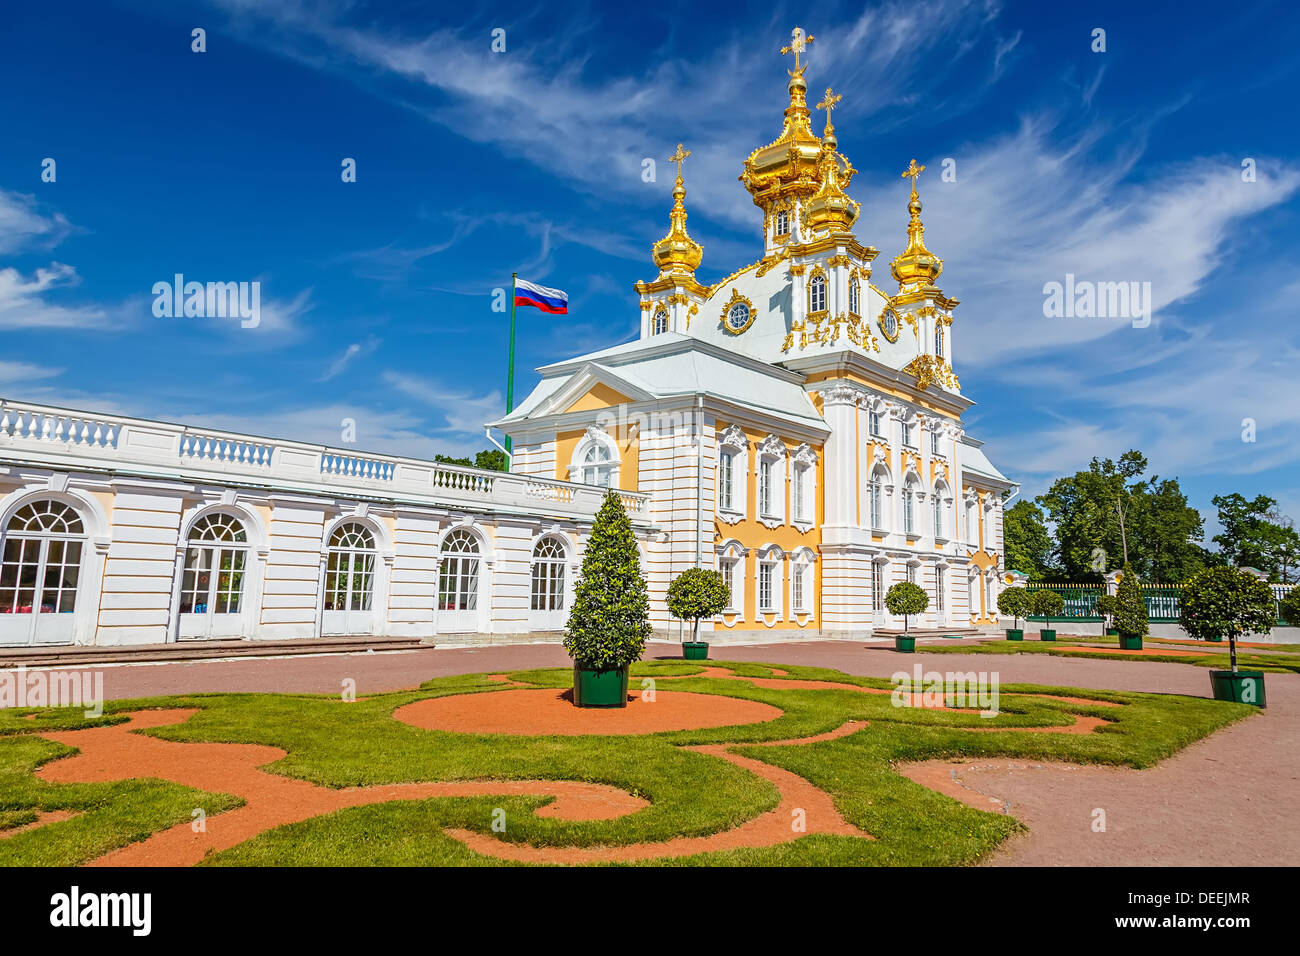 Church in Peterhof, St Petersburg - Stock Image